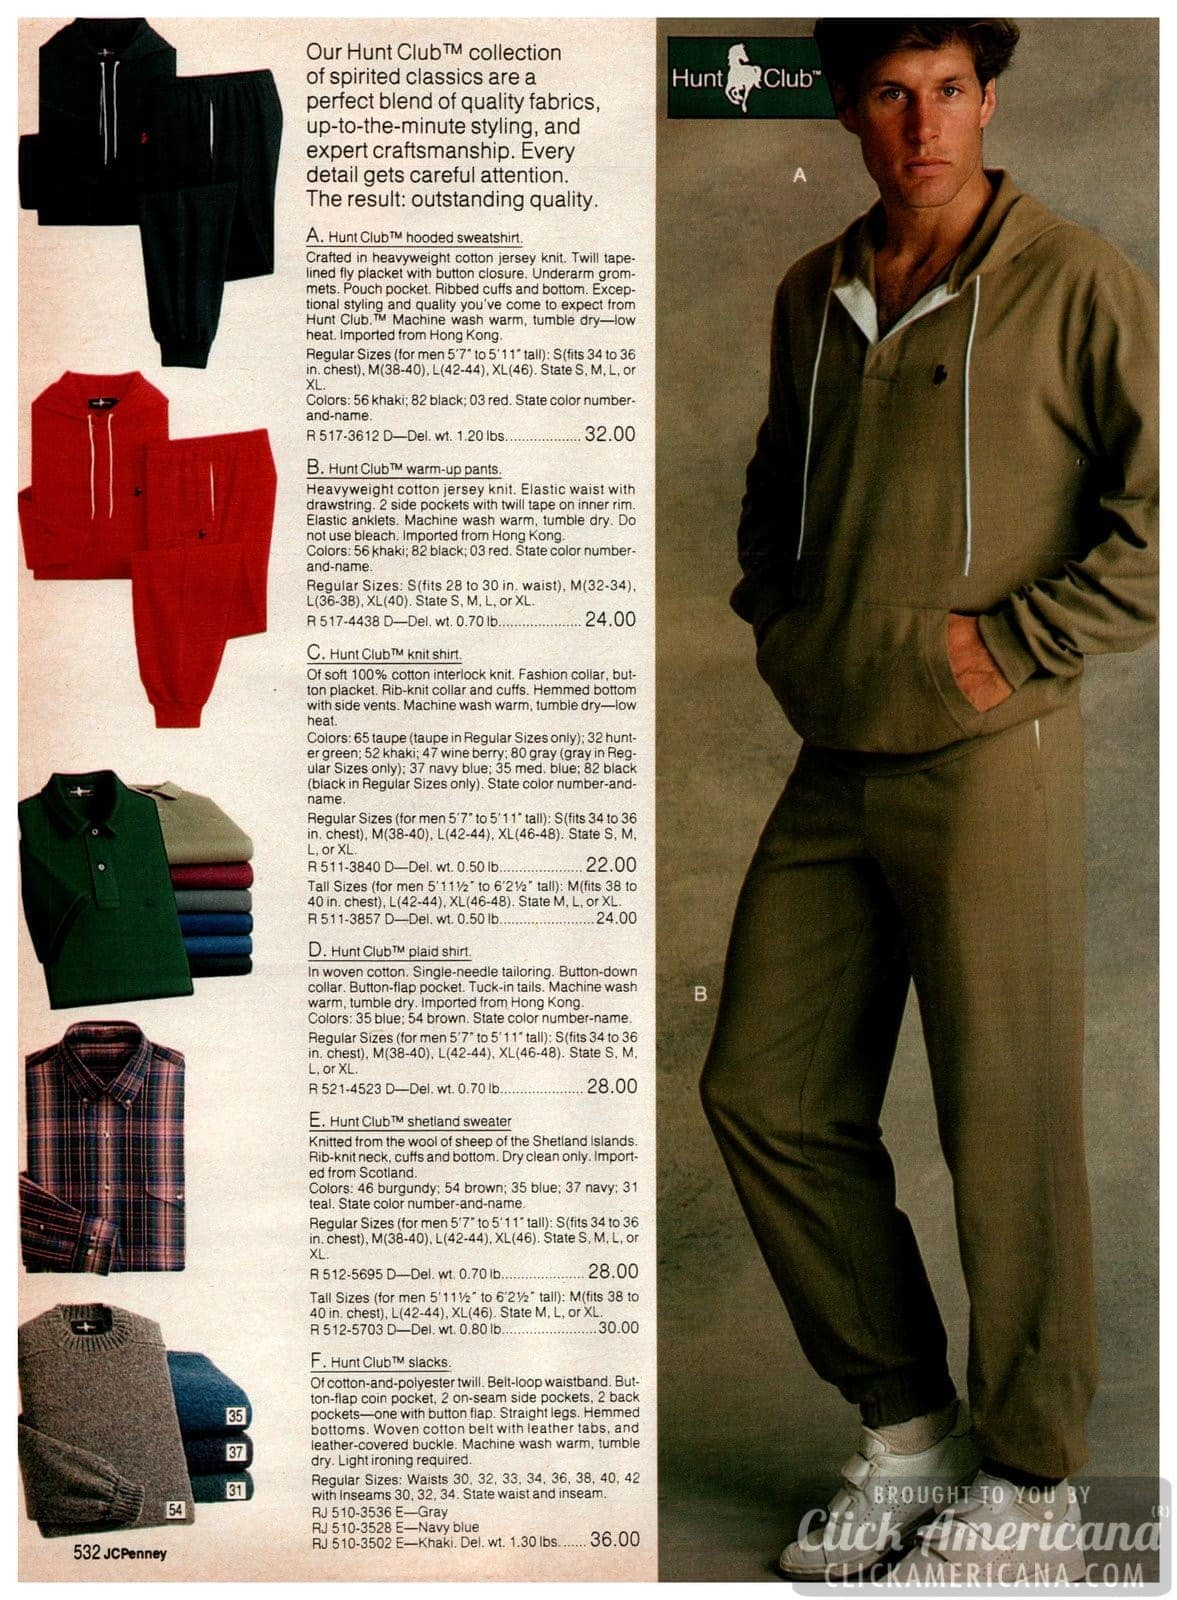 Get sporty, guys! Vintage Hunt Club clothes